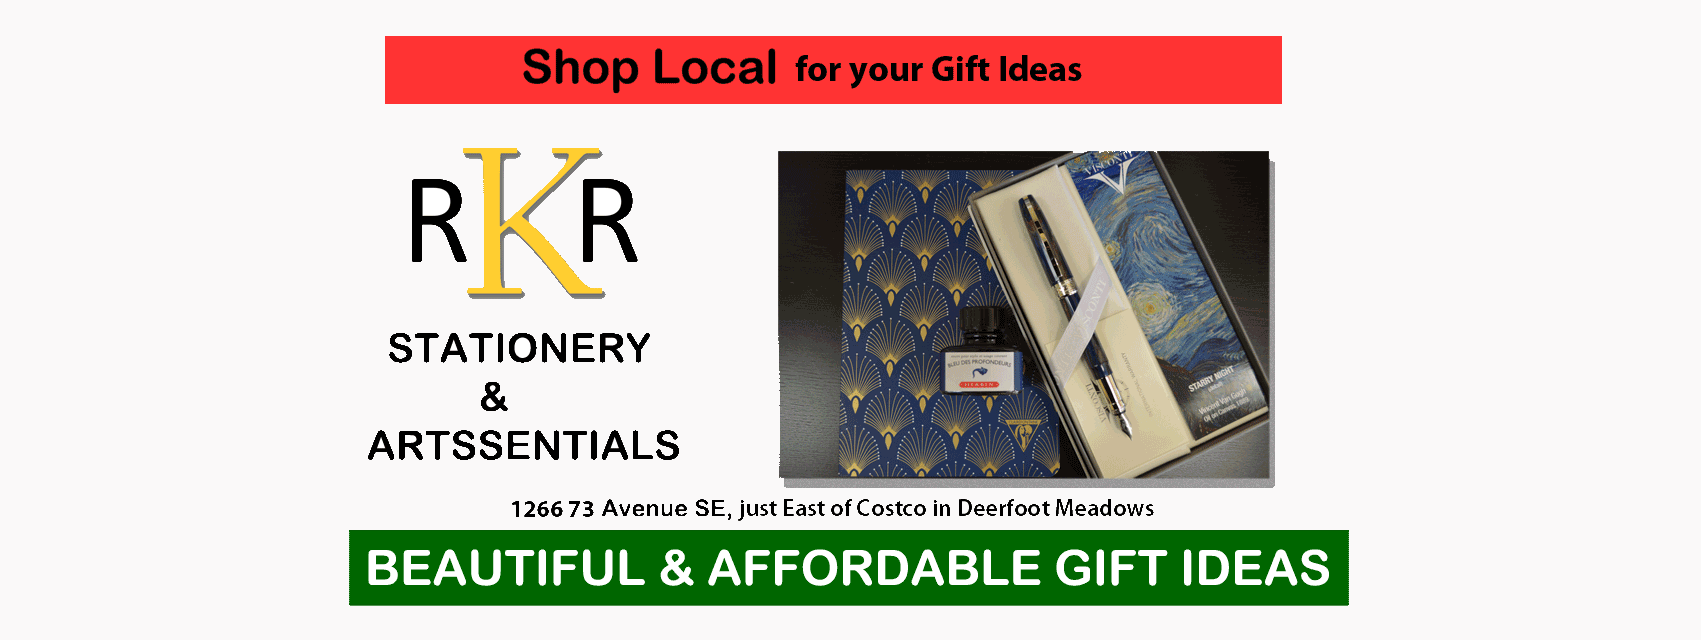 RKR Stationery